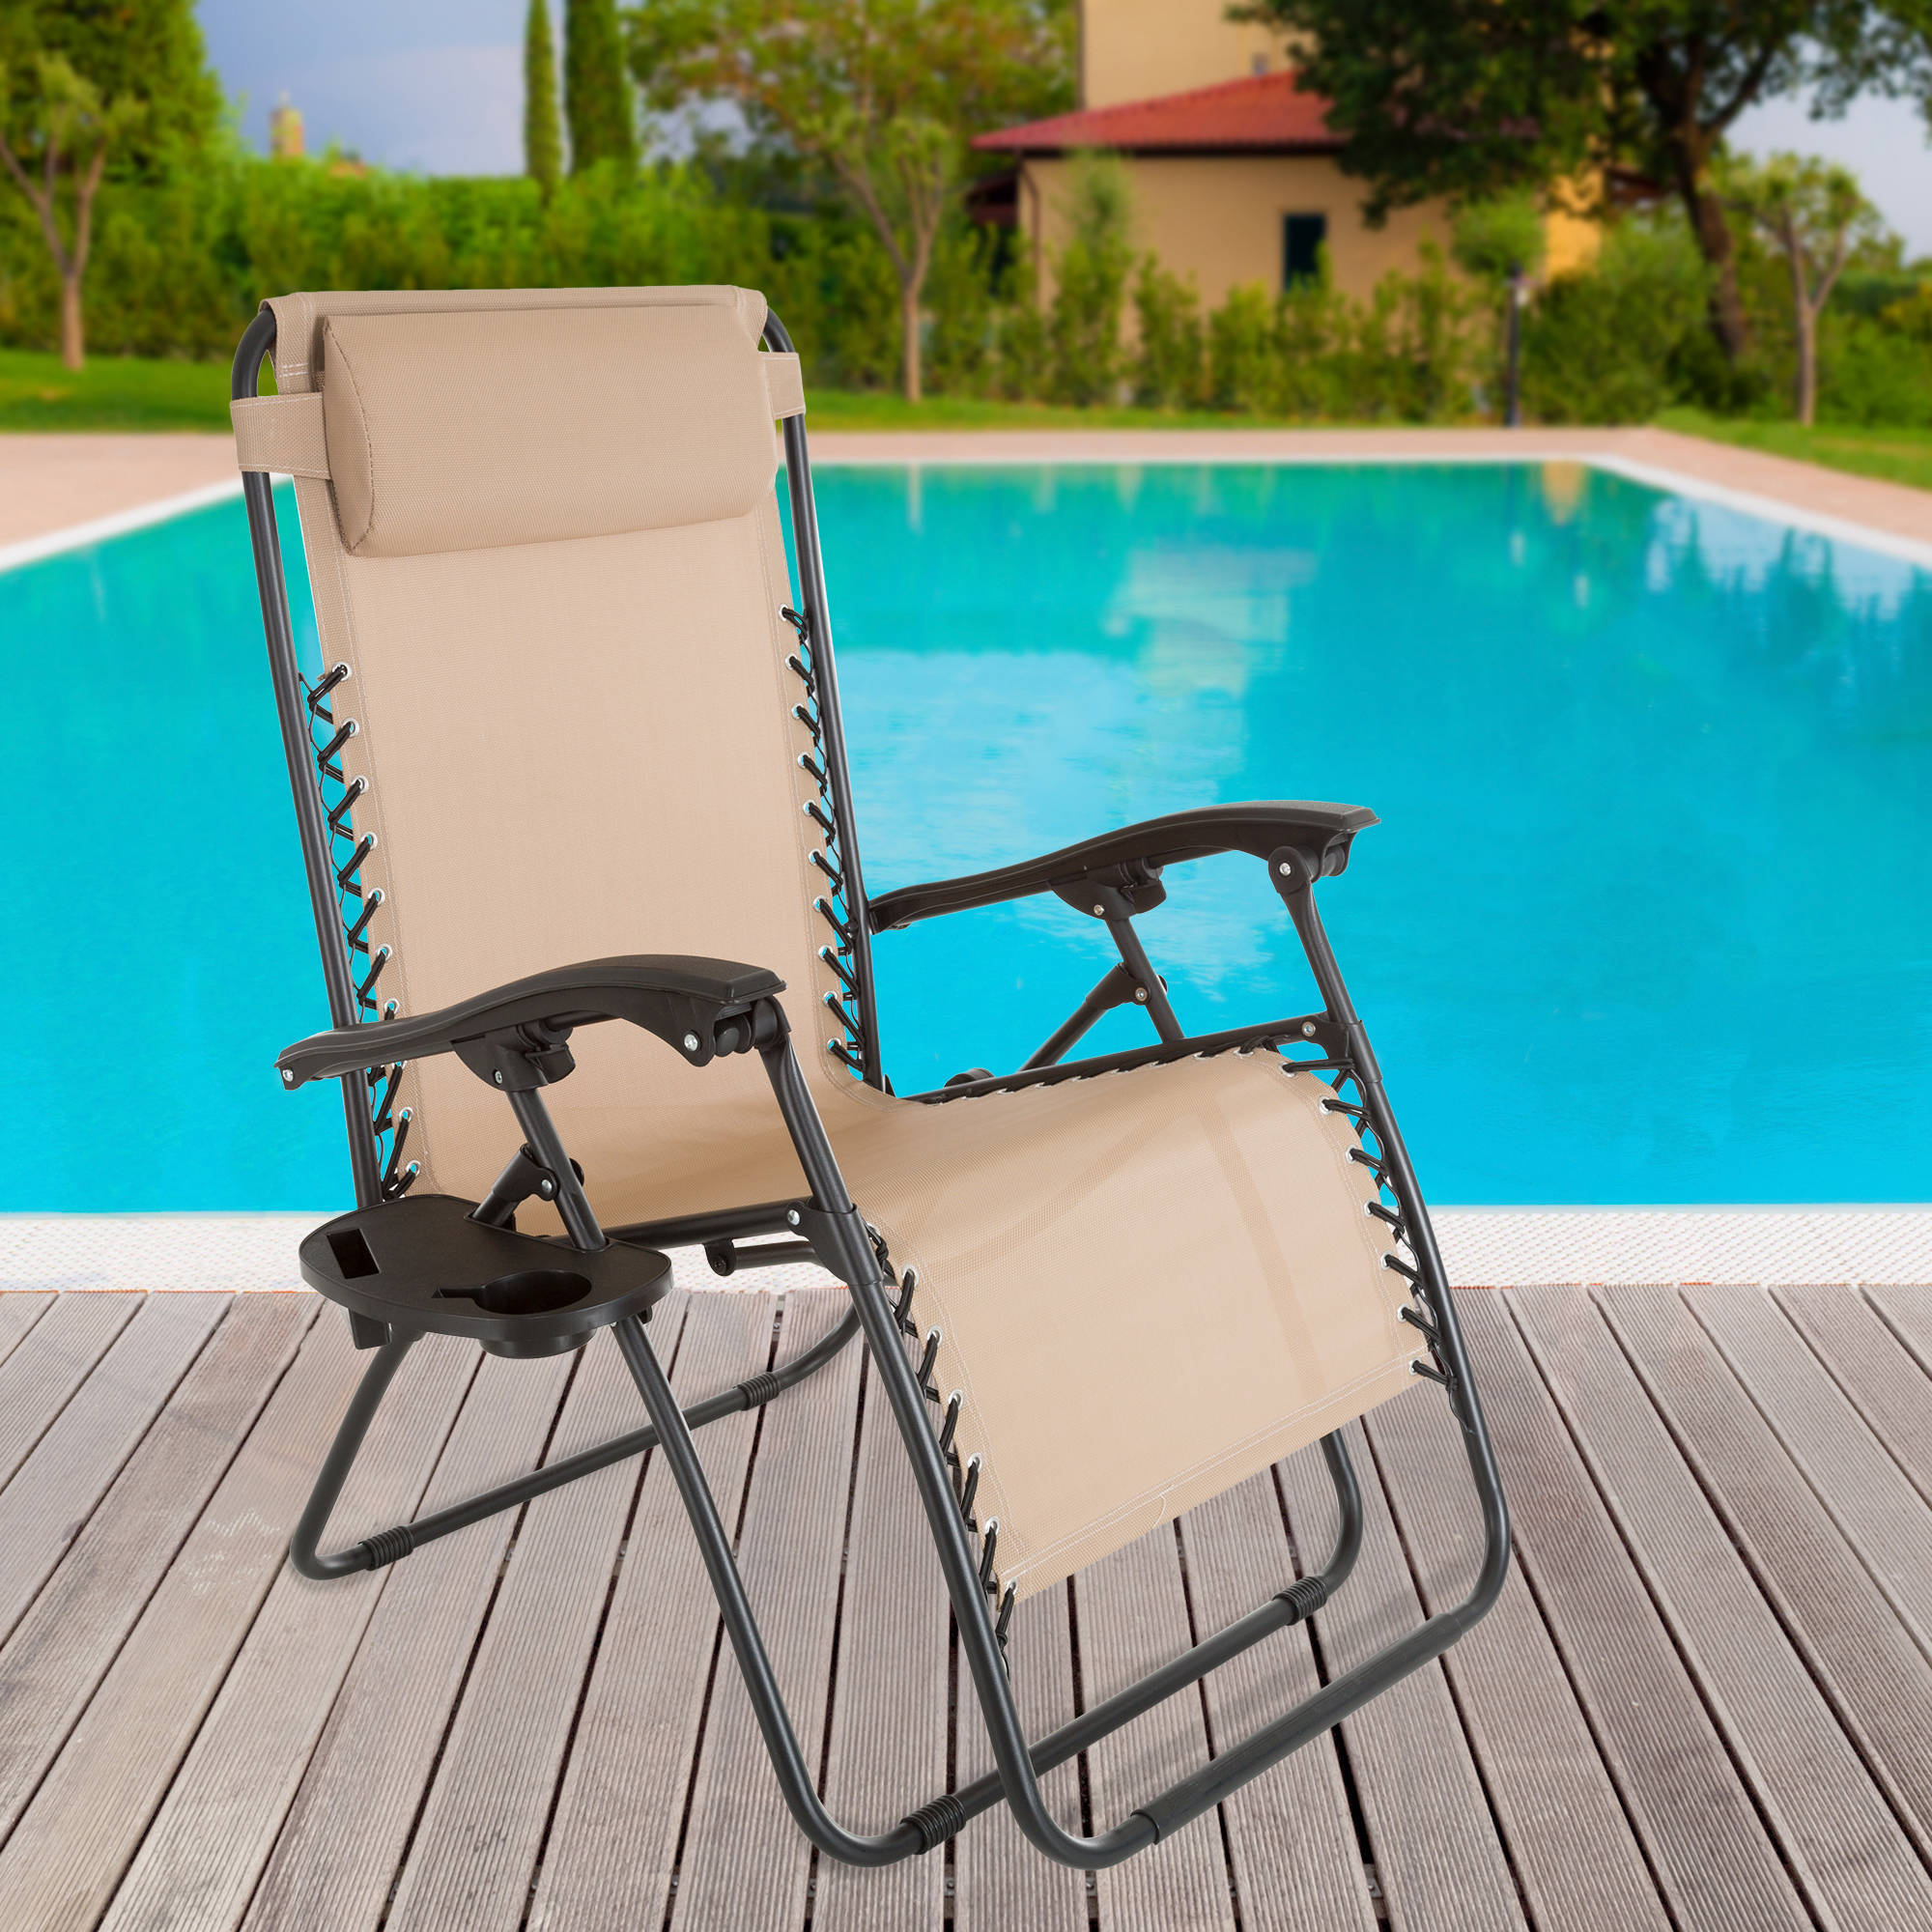 chair headrest pillow ergonomic hip flexors zero gravity outdoor reclining foldable lounge with and cup holder for ...